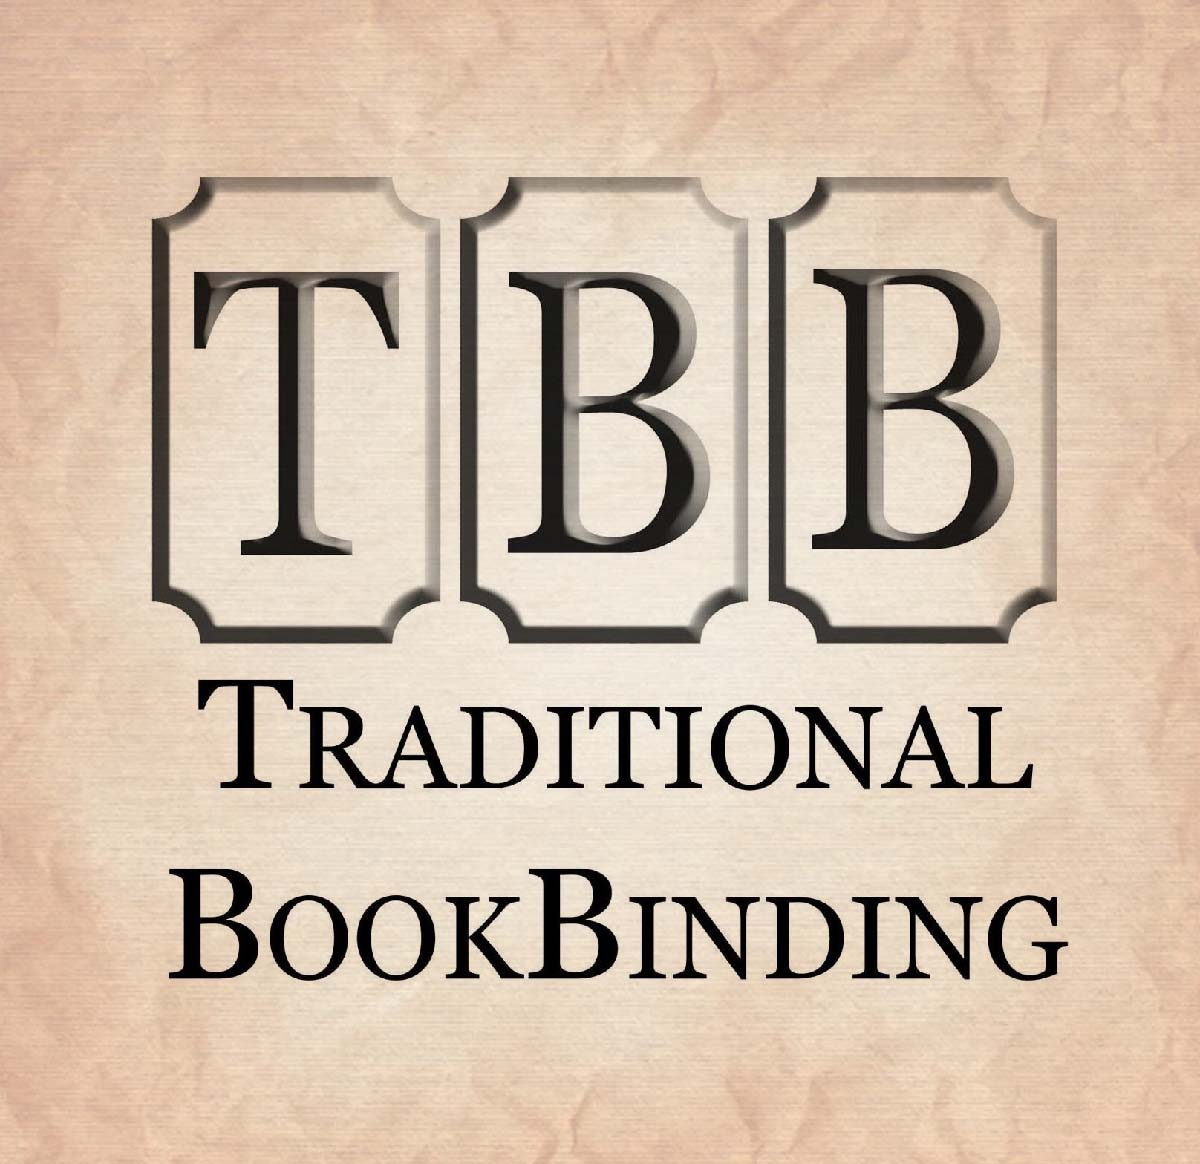 Traditional bookbinding.com.au